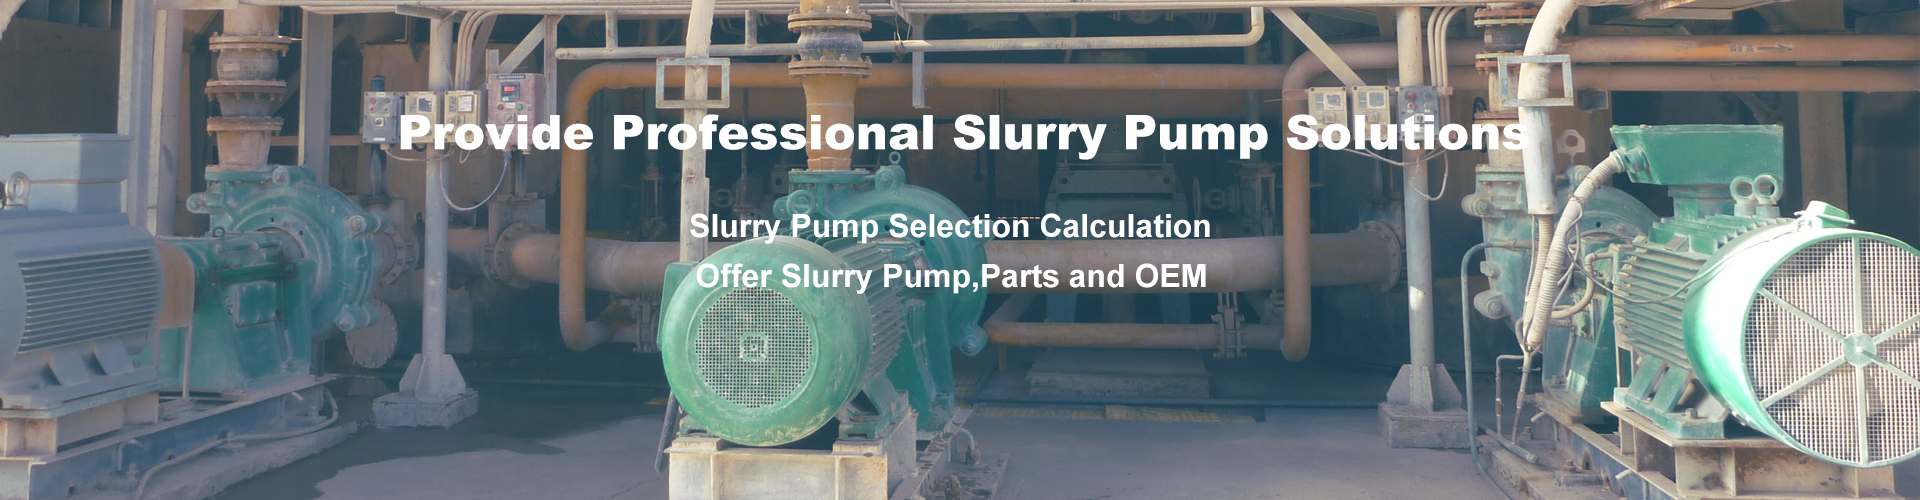 slurry pump selection calculation